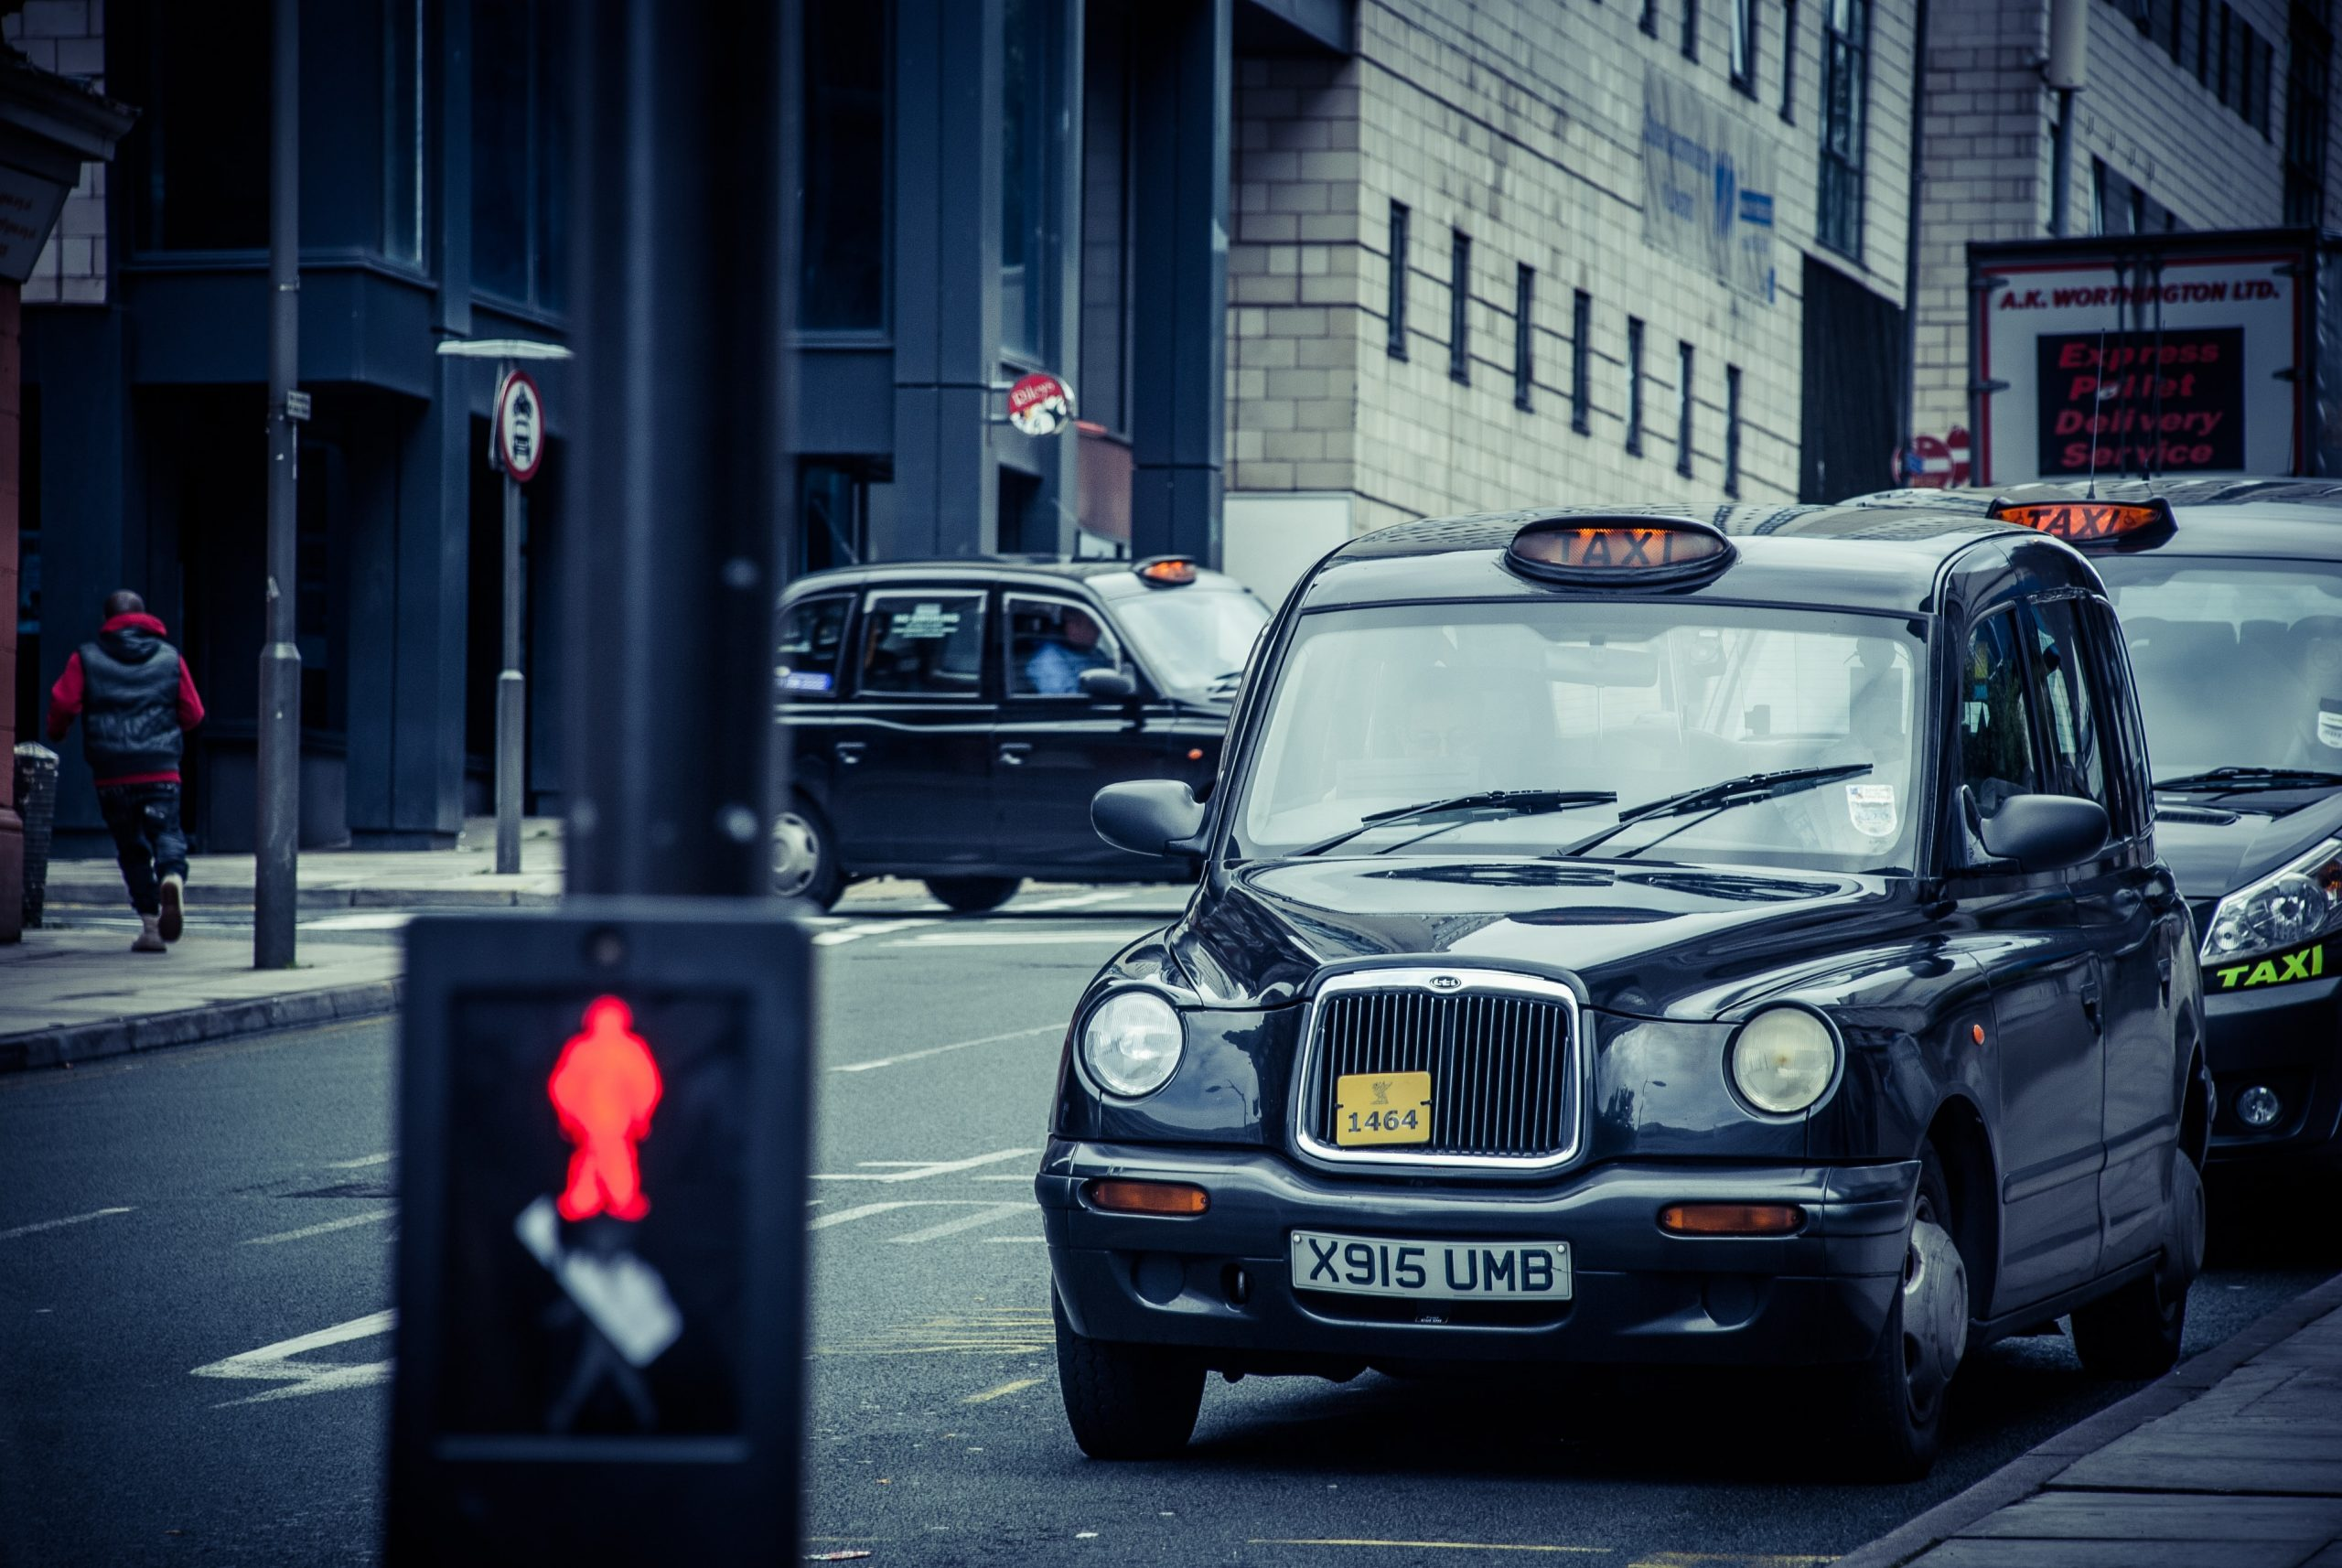 Black taxi parked by the side of the street near a pedestrian crossing.